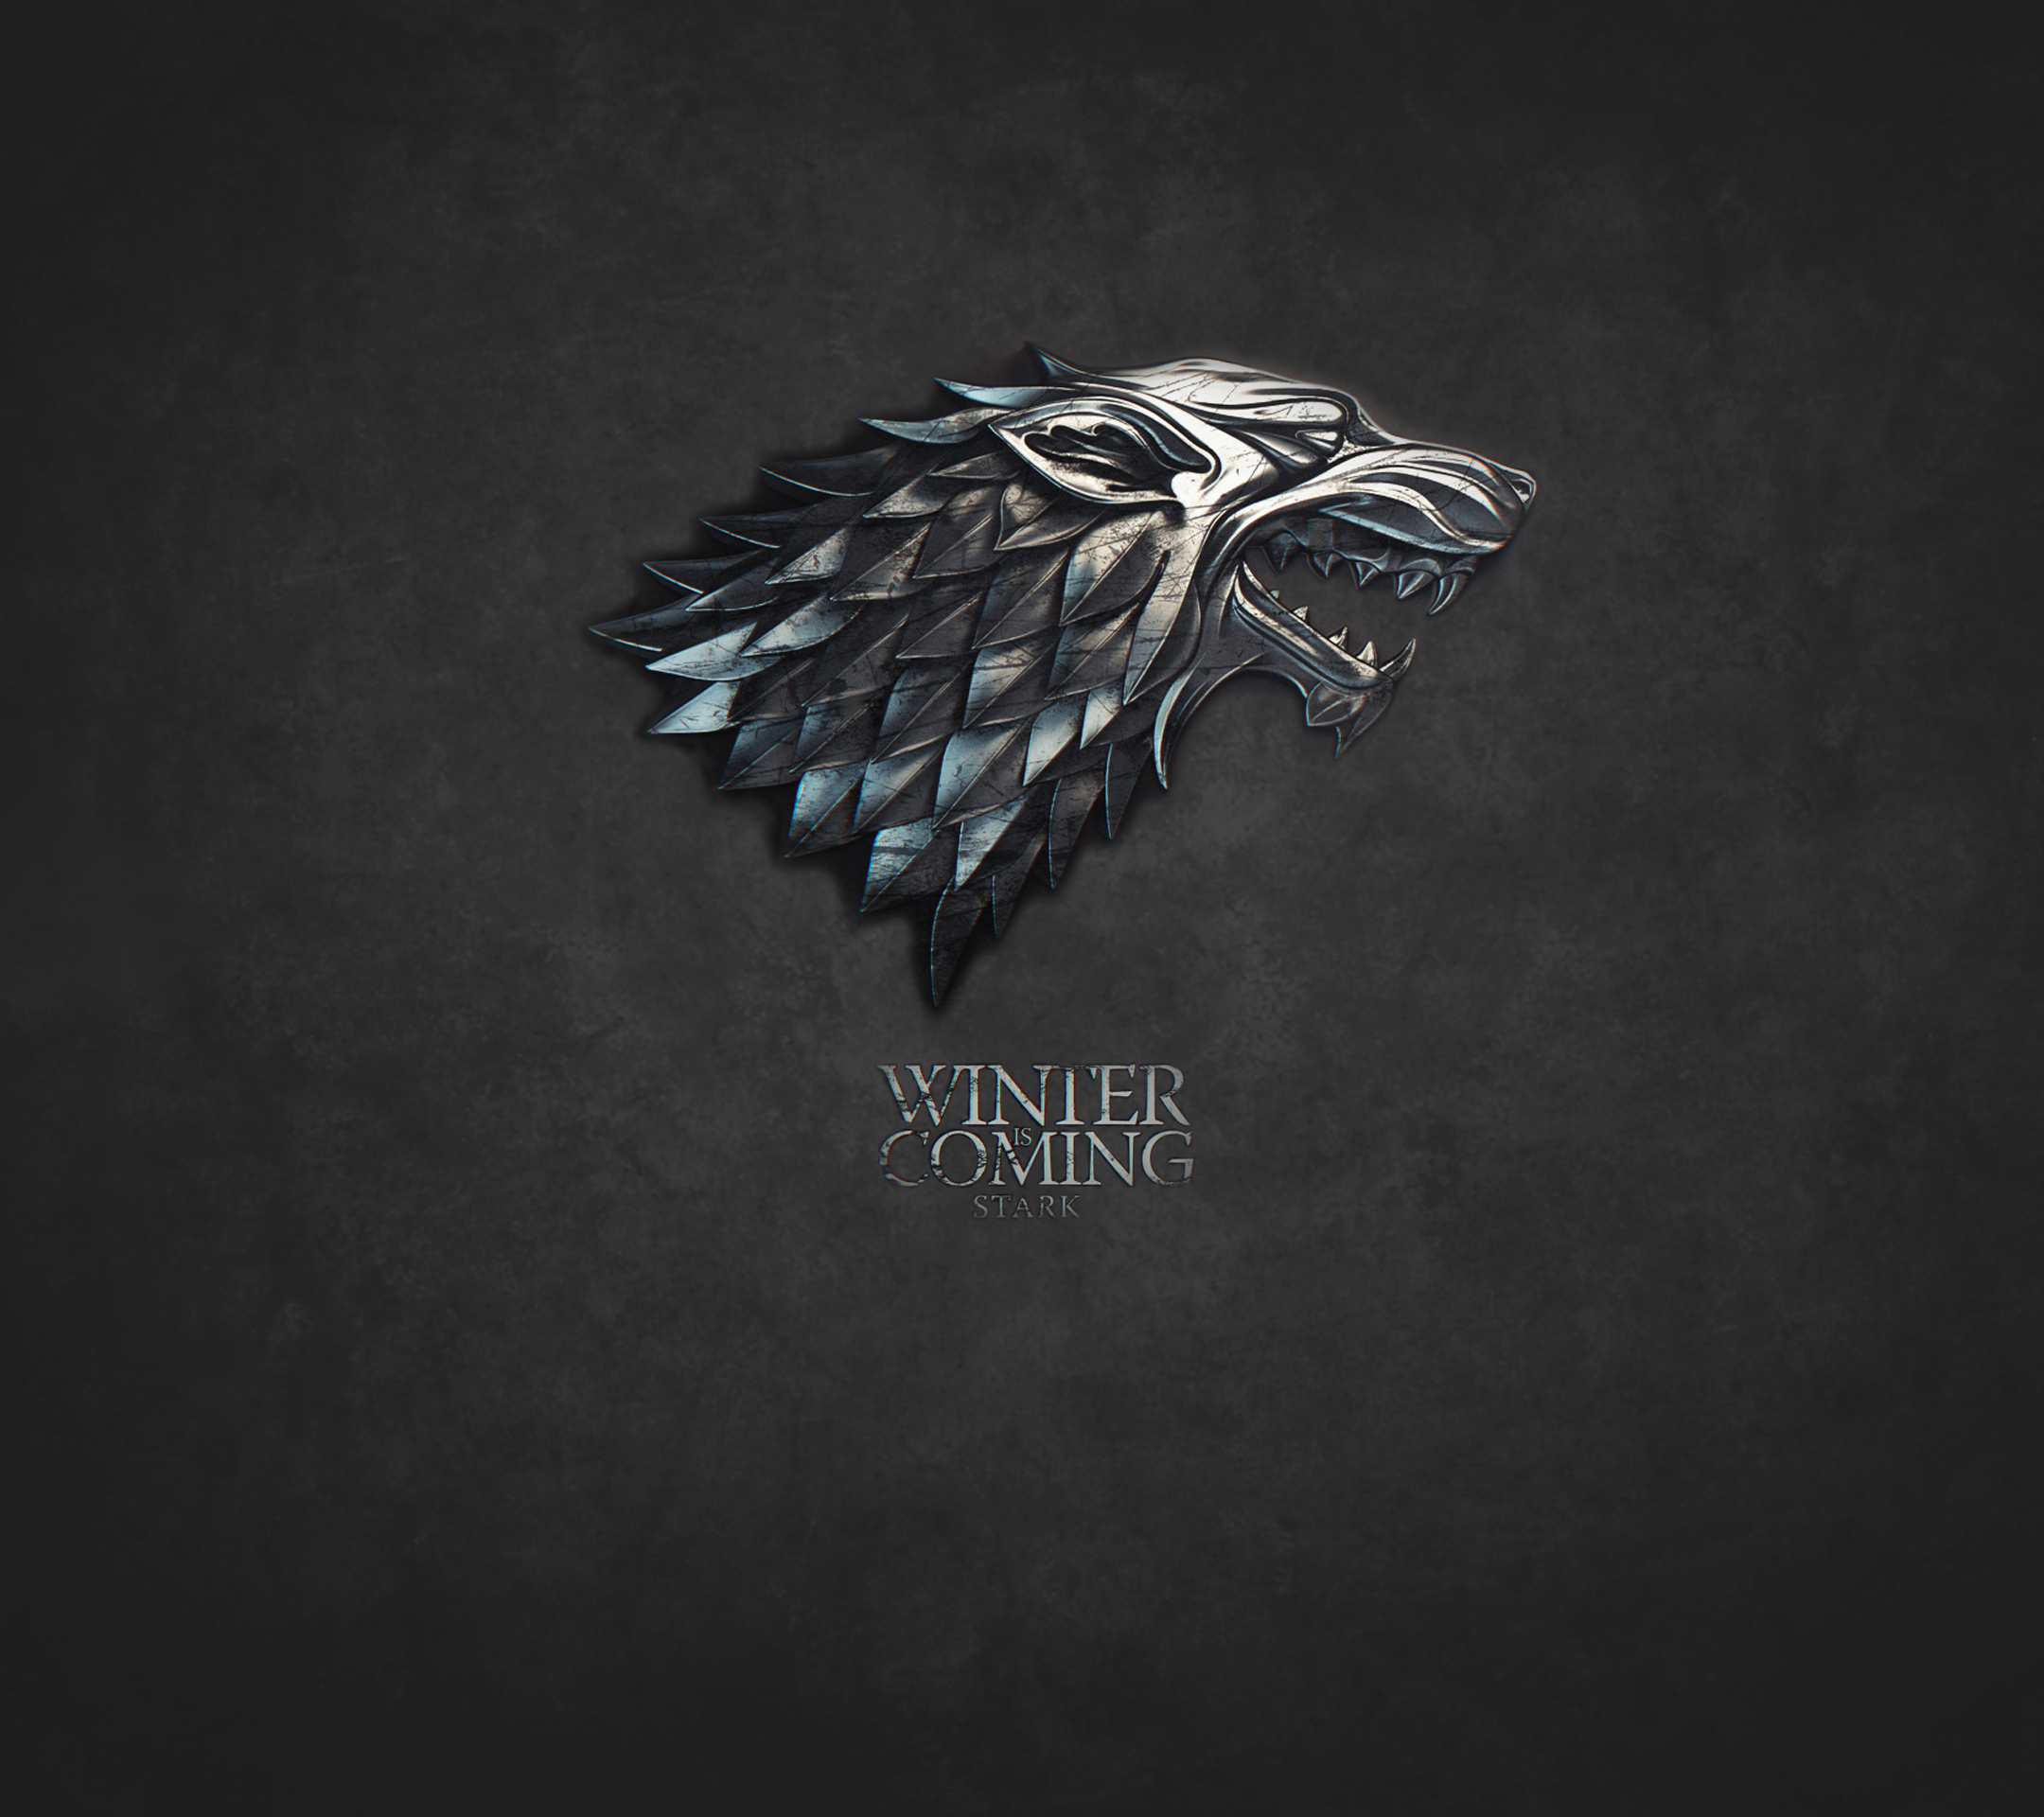 Adorable Stark Wallpaper, 39432647 2160x1920